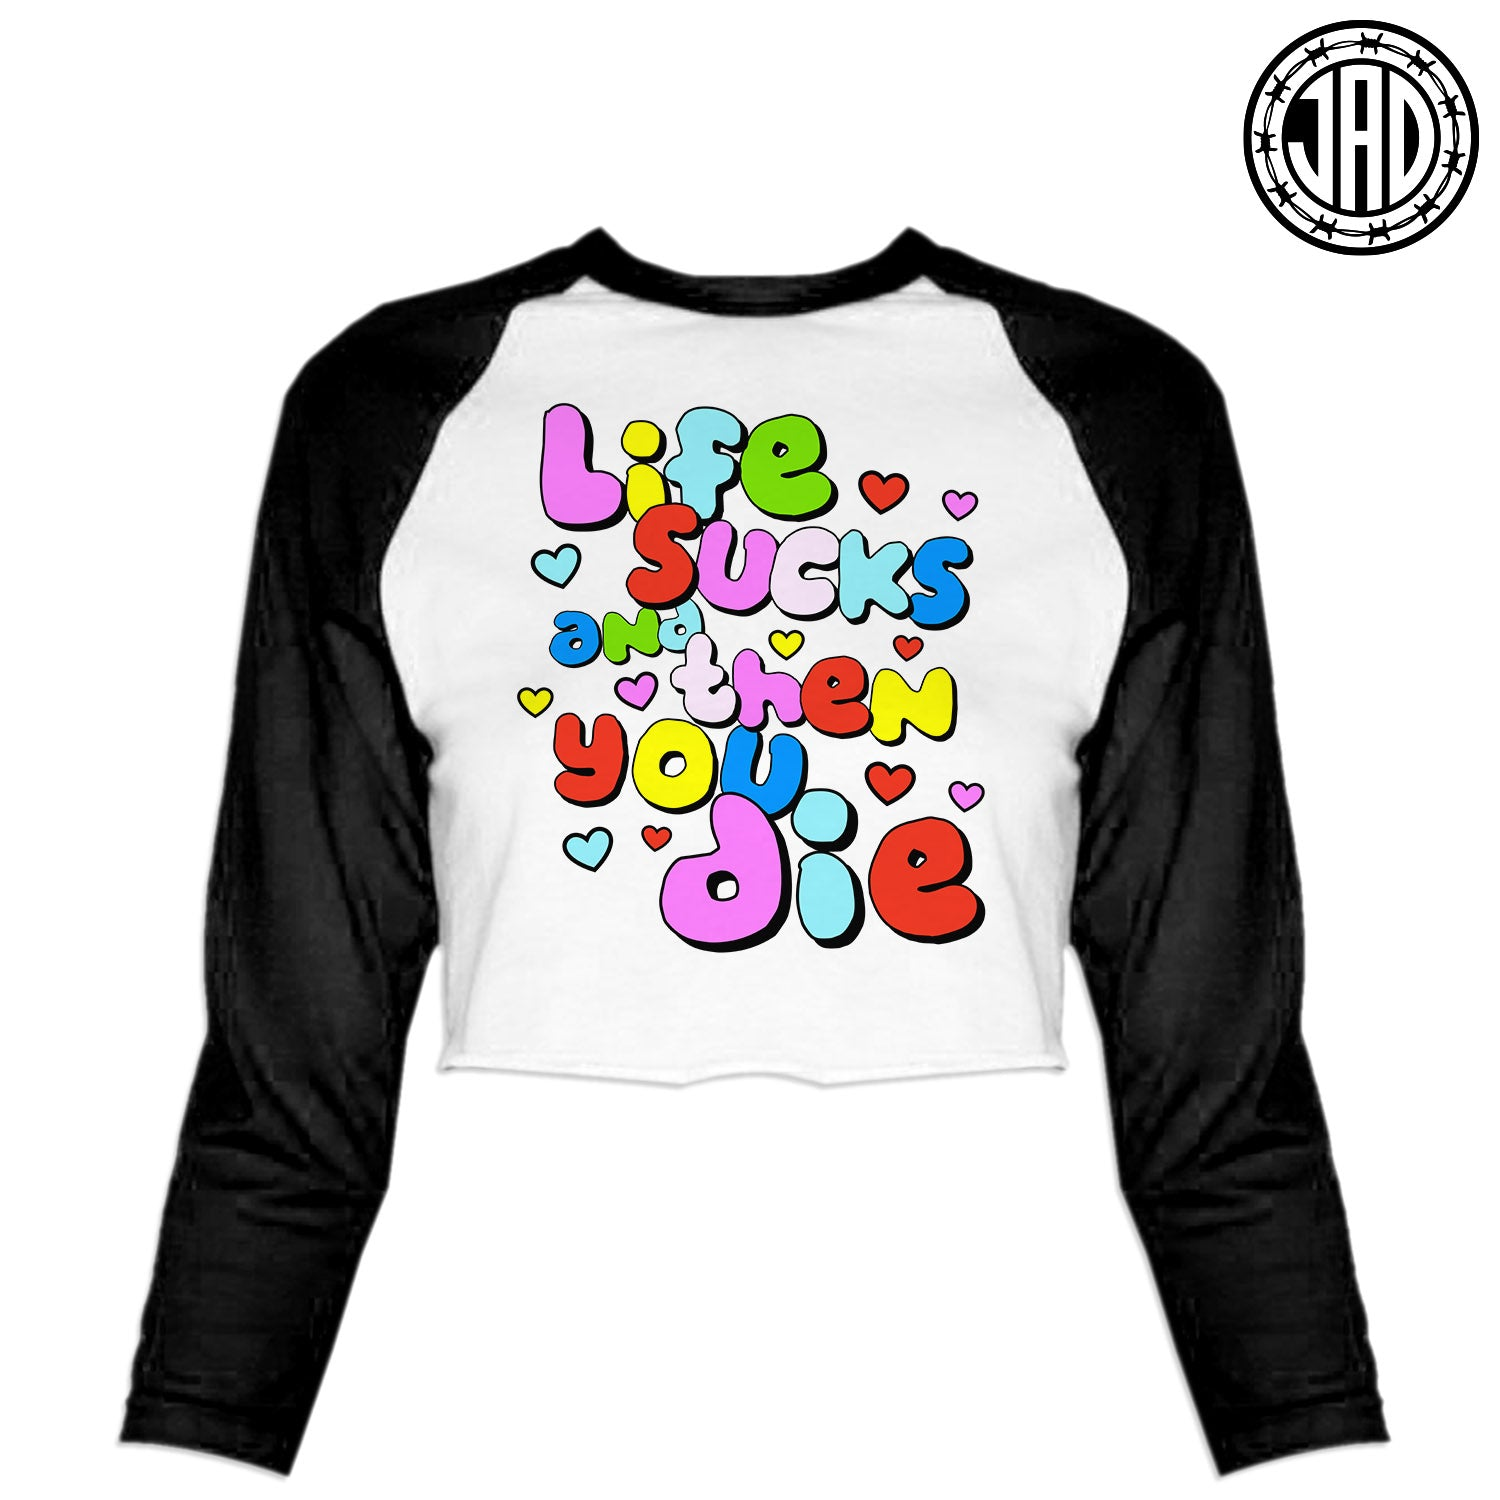 Life Sux - Women's Cropped Baseball Tee